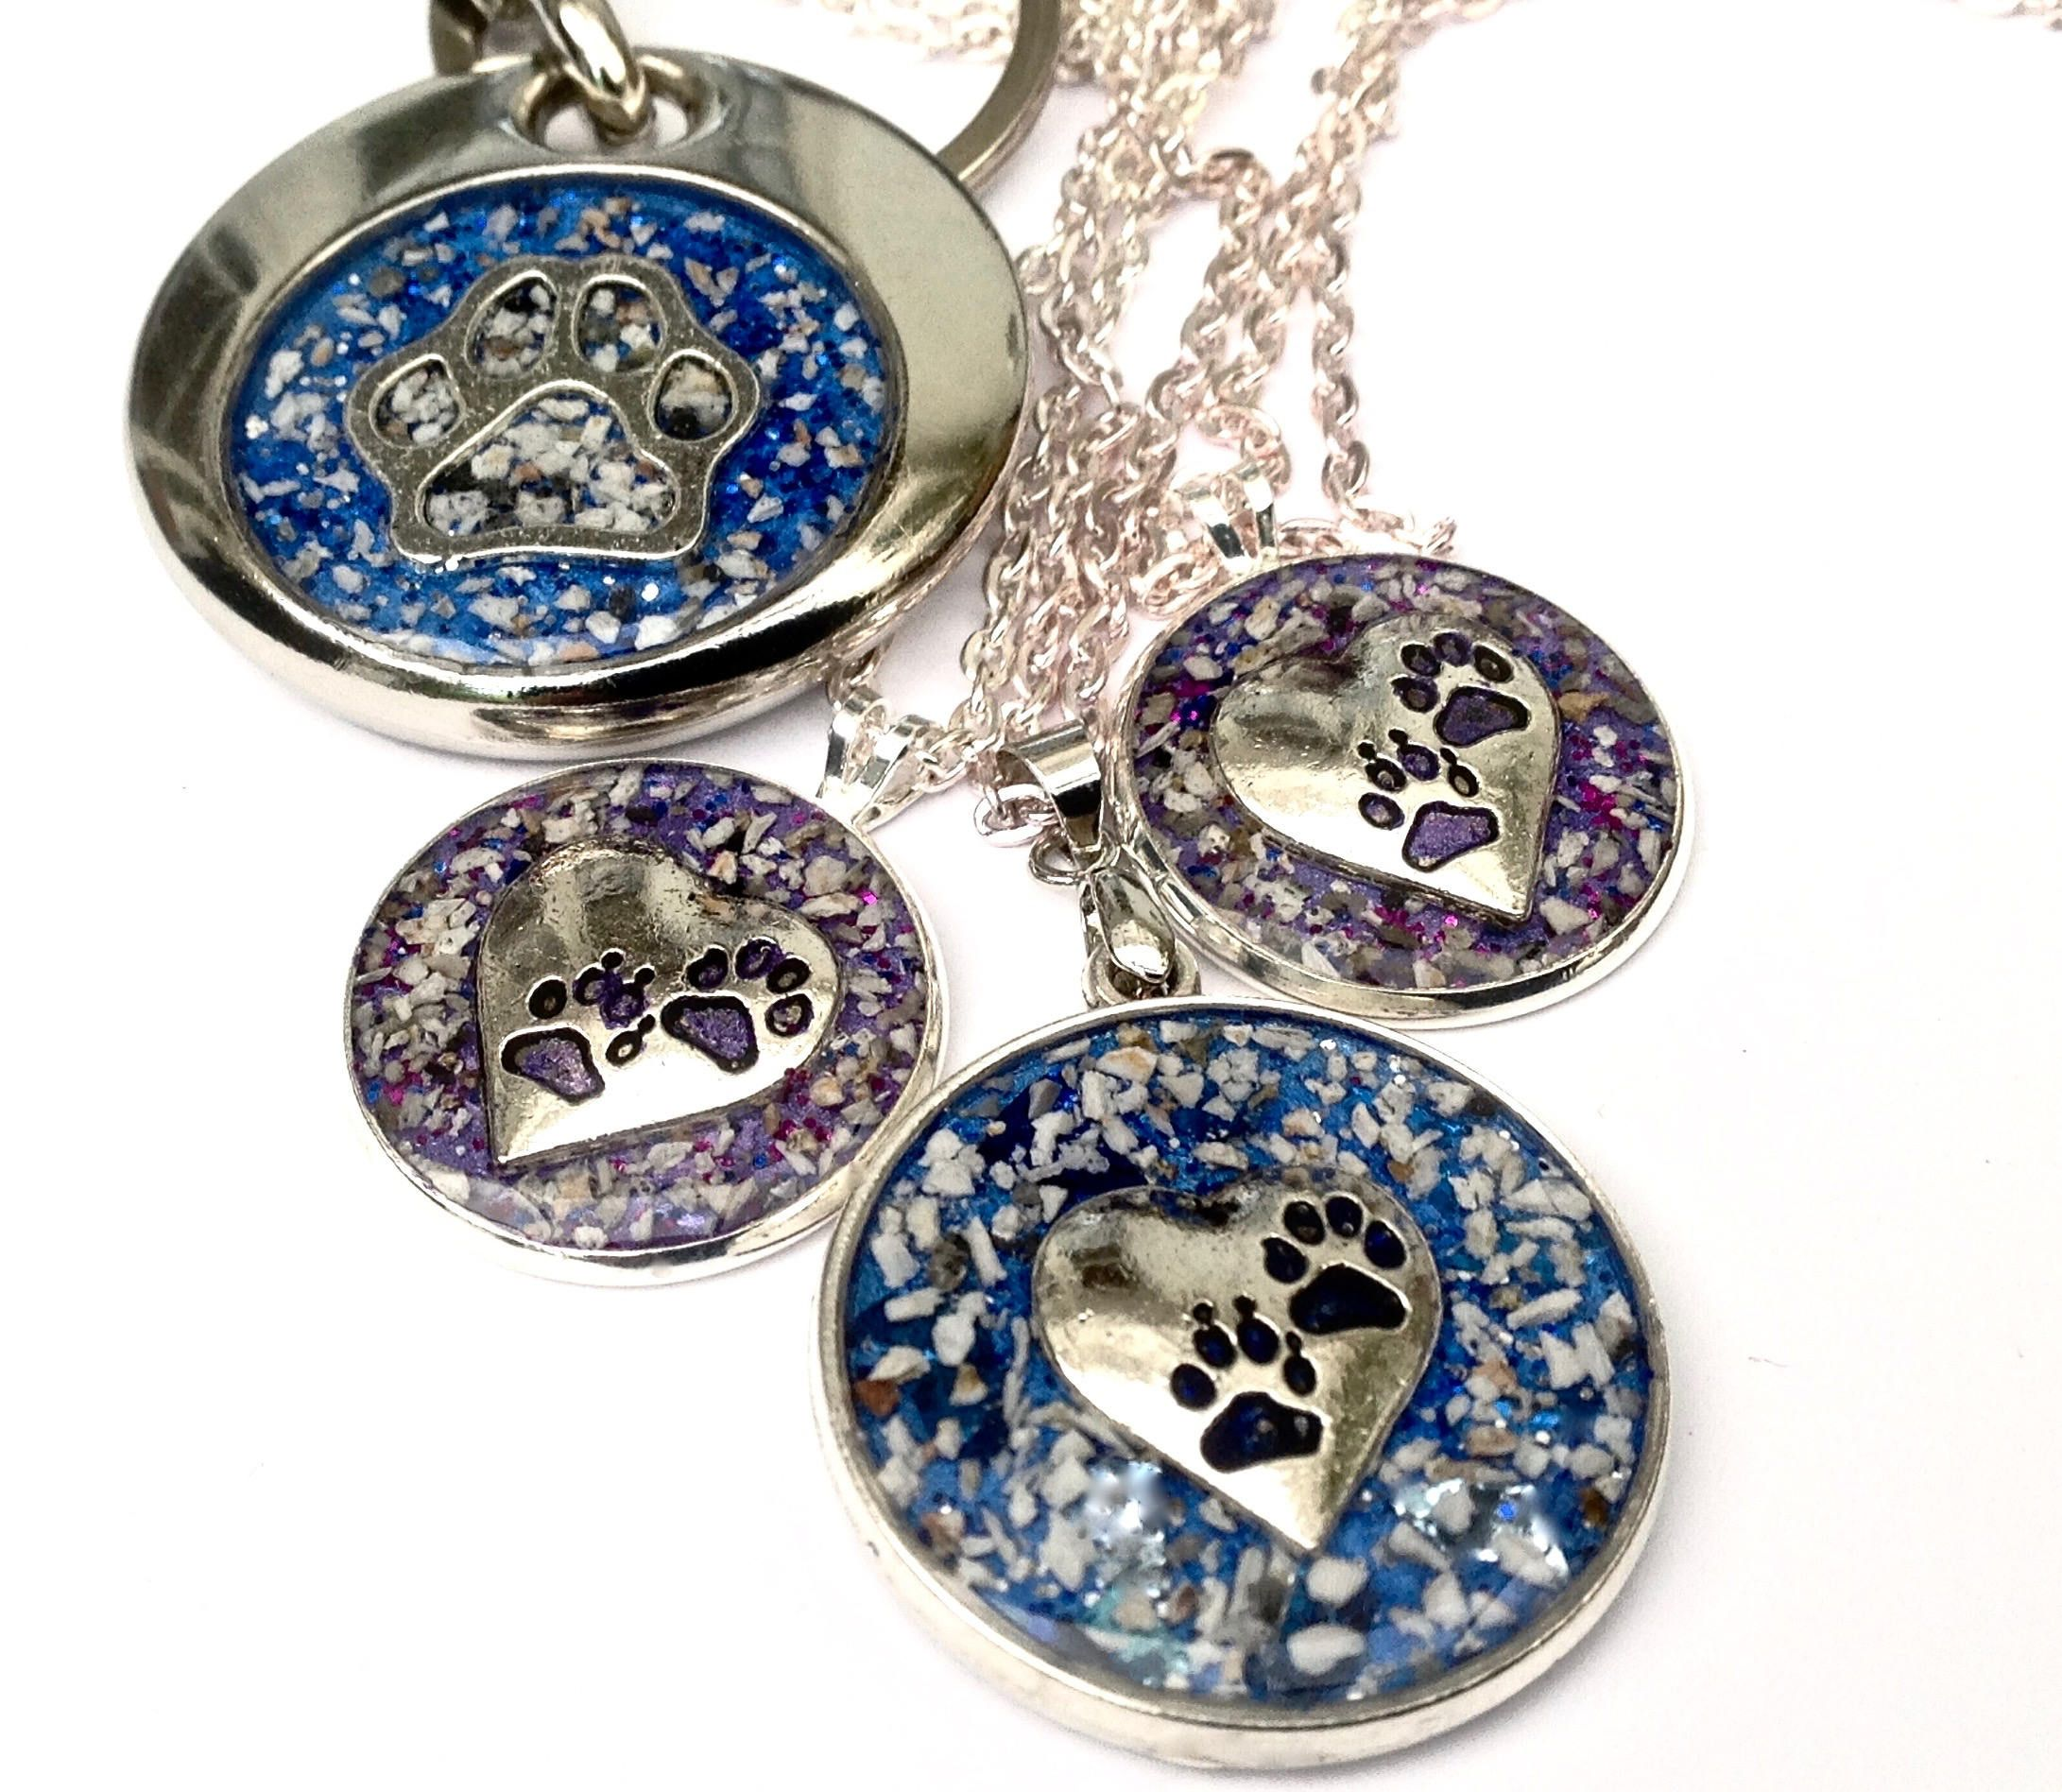 Cremation Jewellery for ashes. Safely sealed in resin